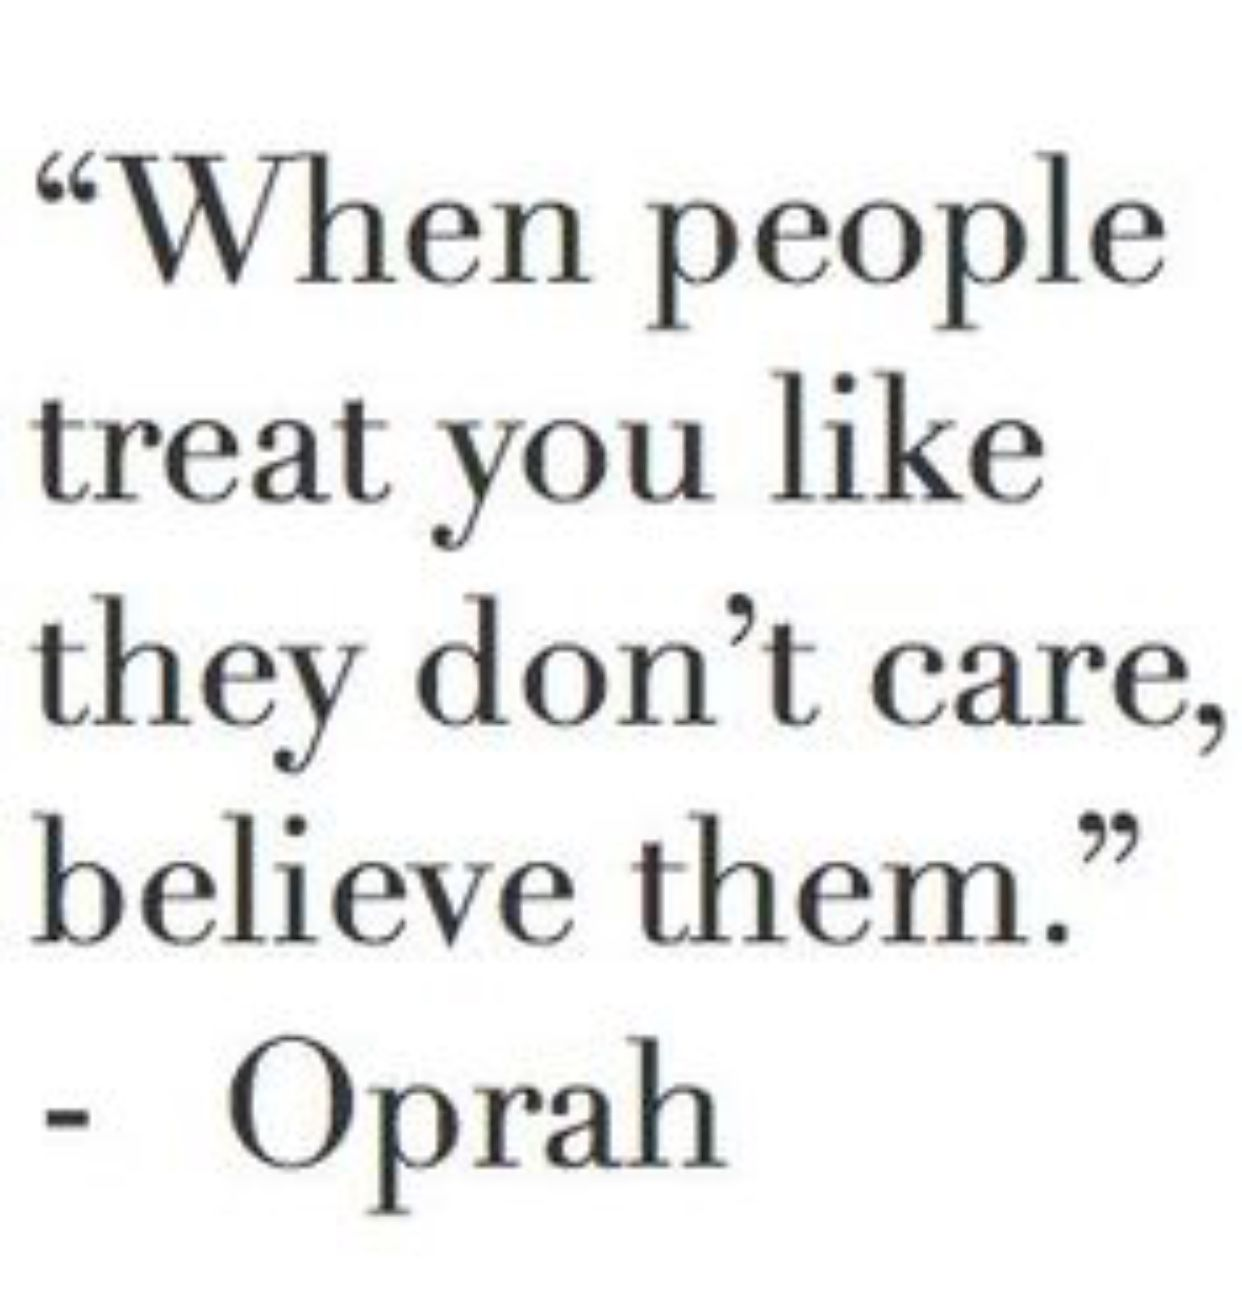 Oprah Quotes About Friendship Sadly This Is Very True Books Worth Reading  Pinterest  Oprah